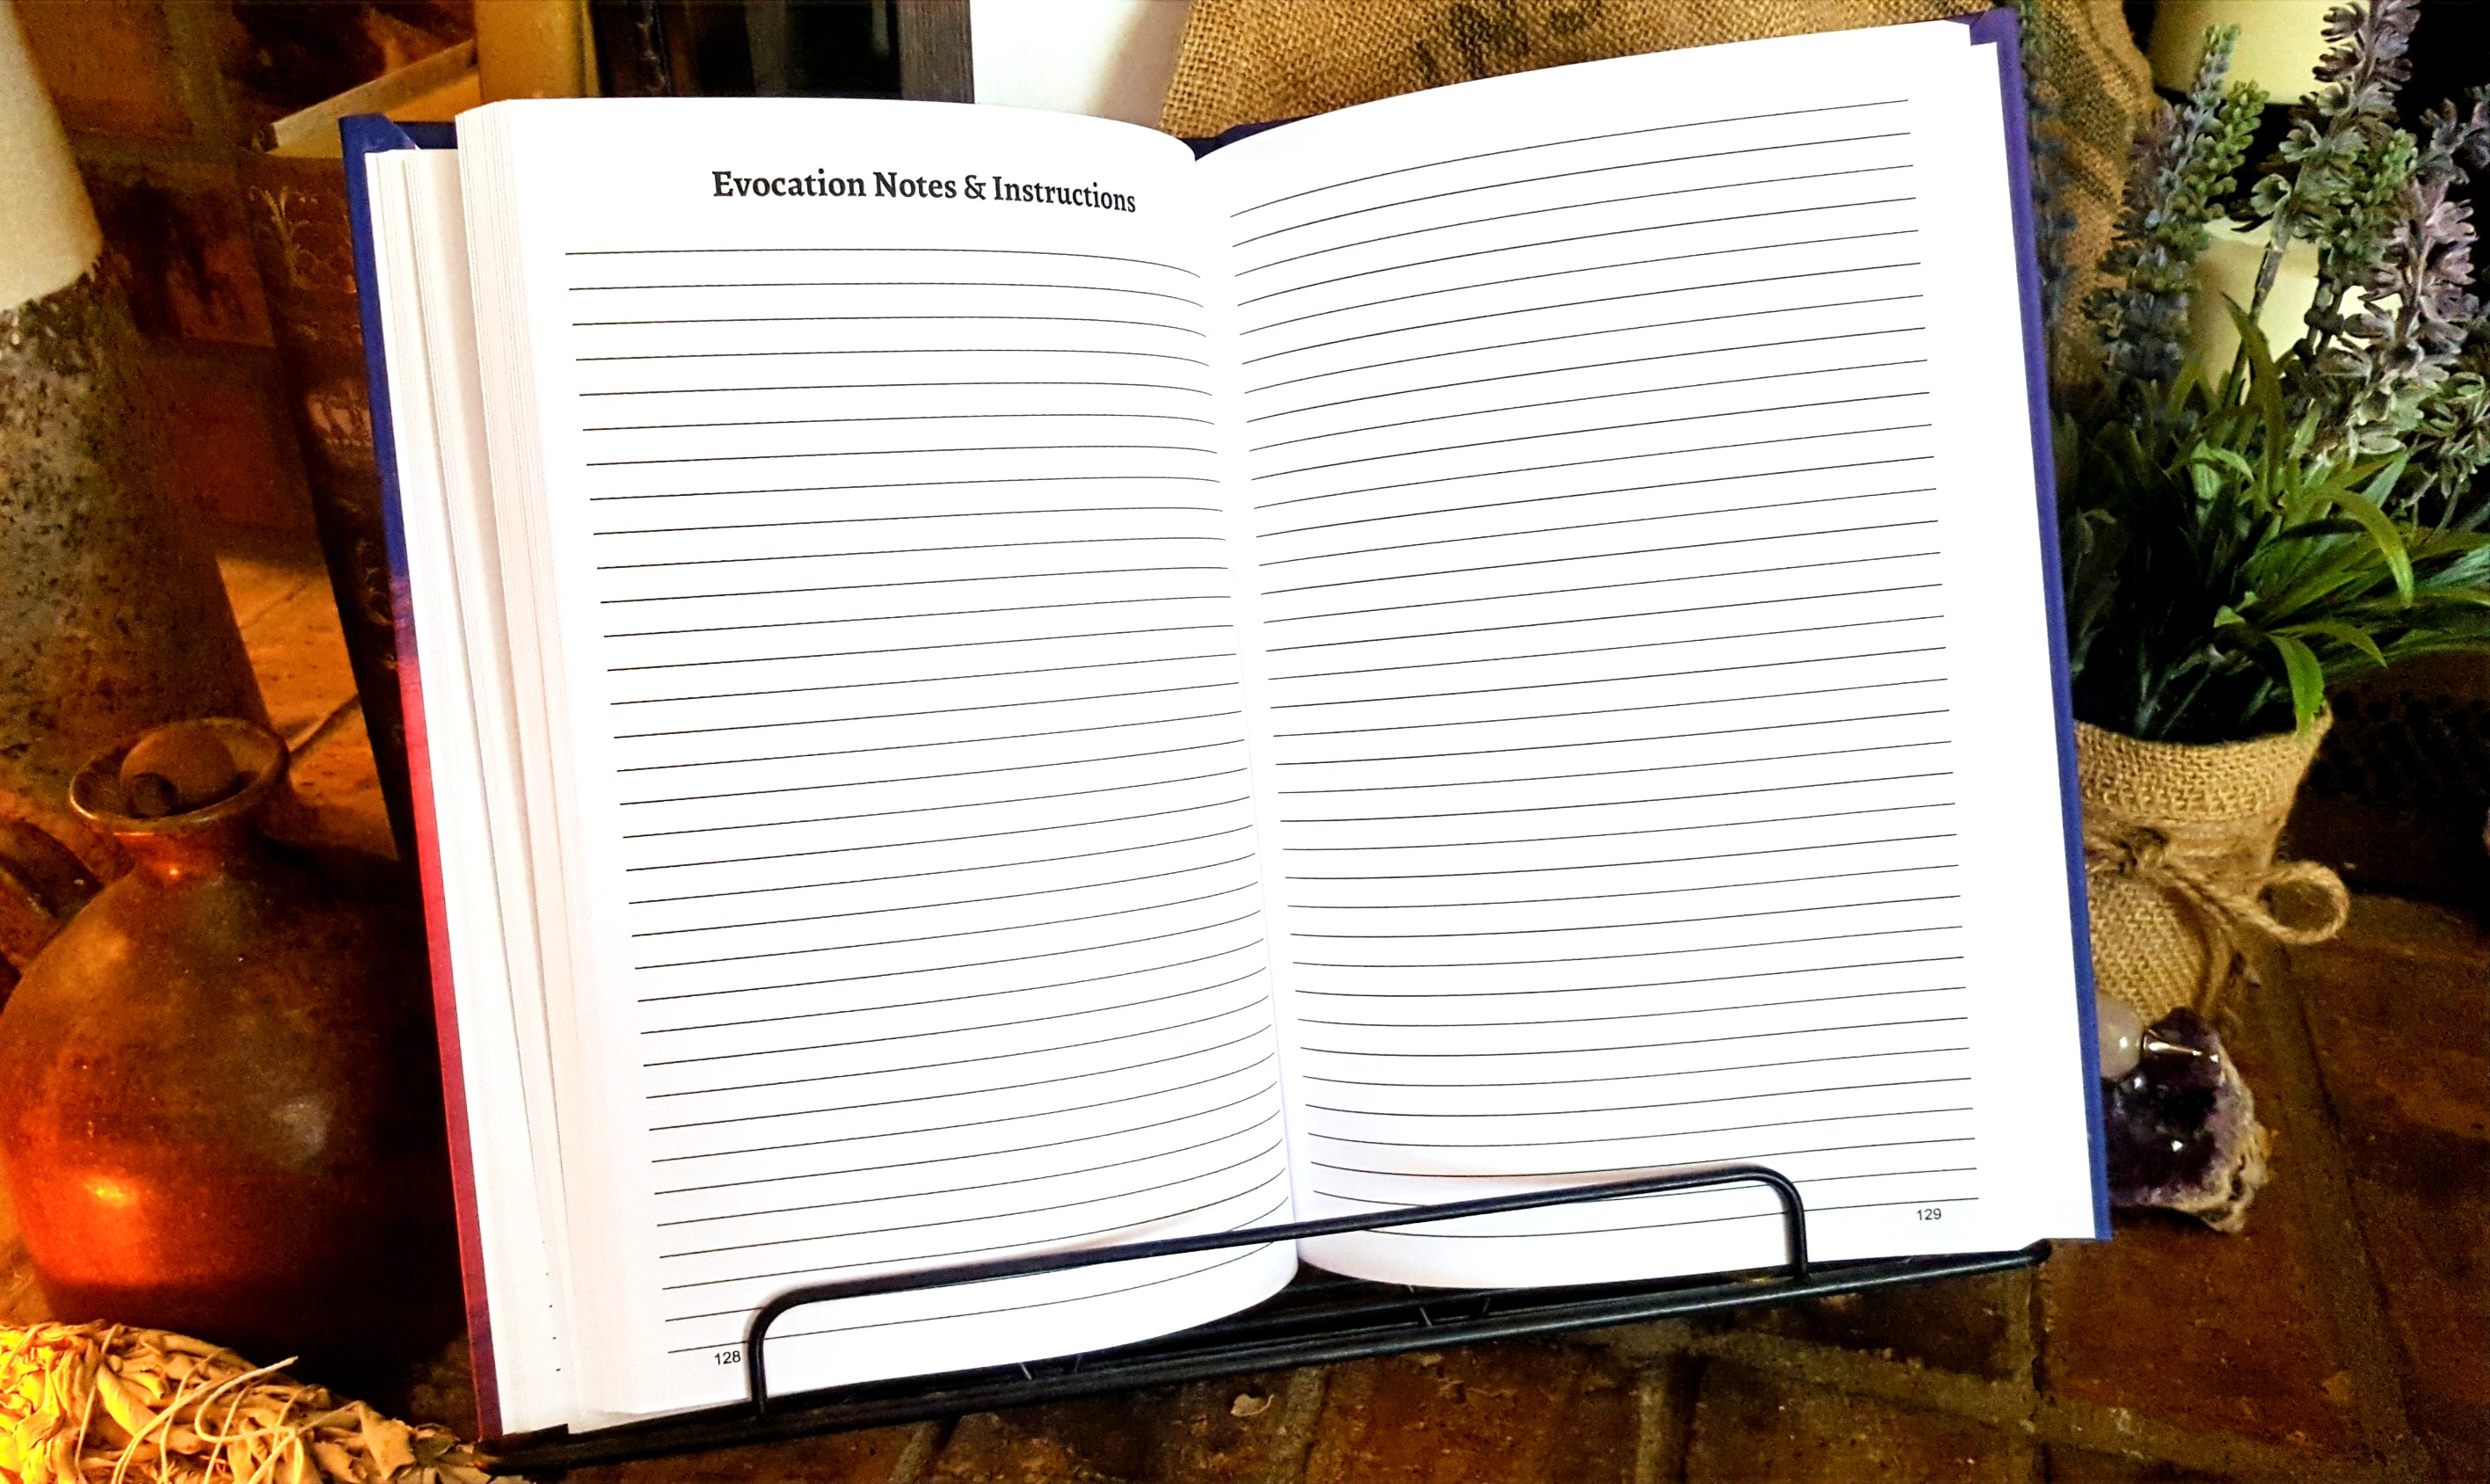 Each section is separated with additional note pages